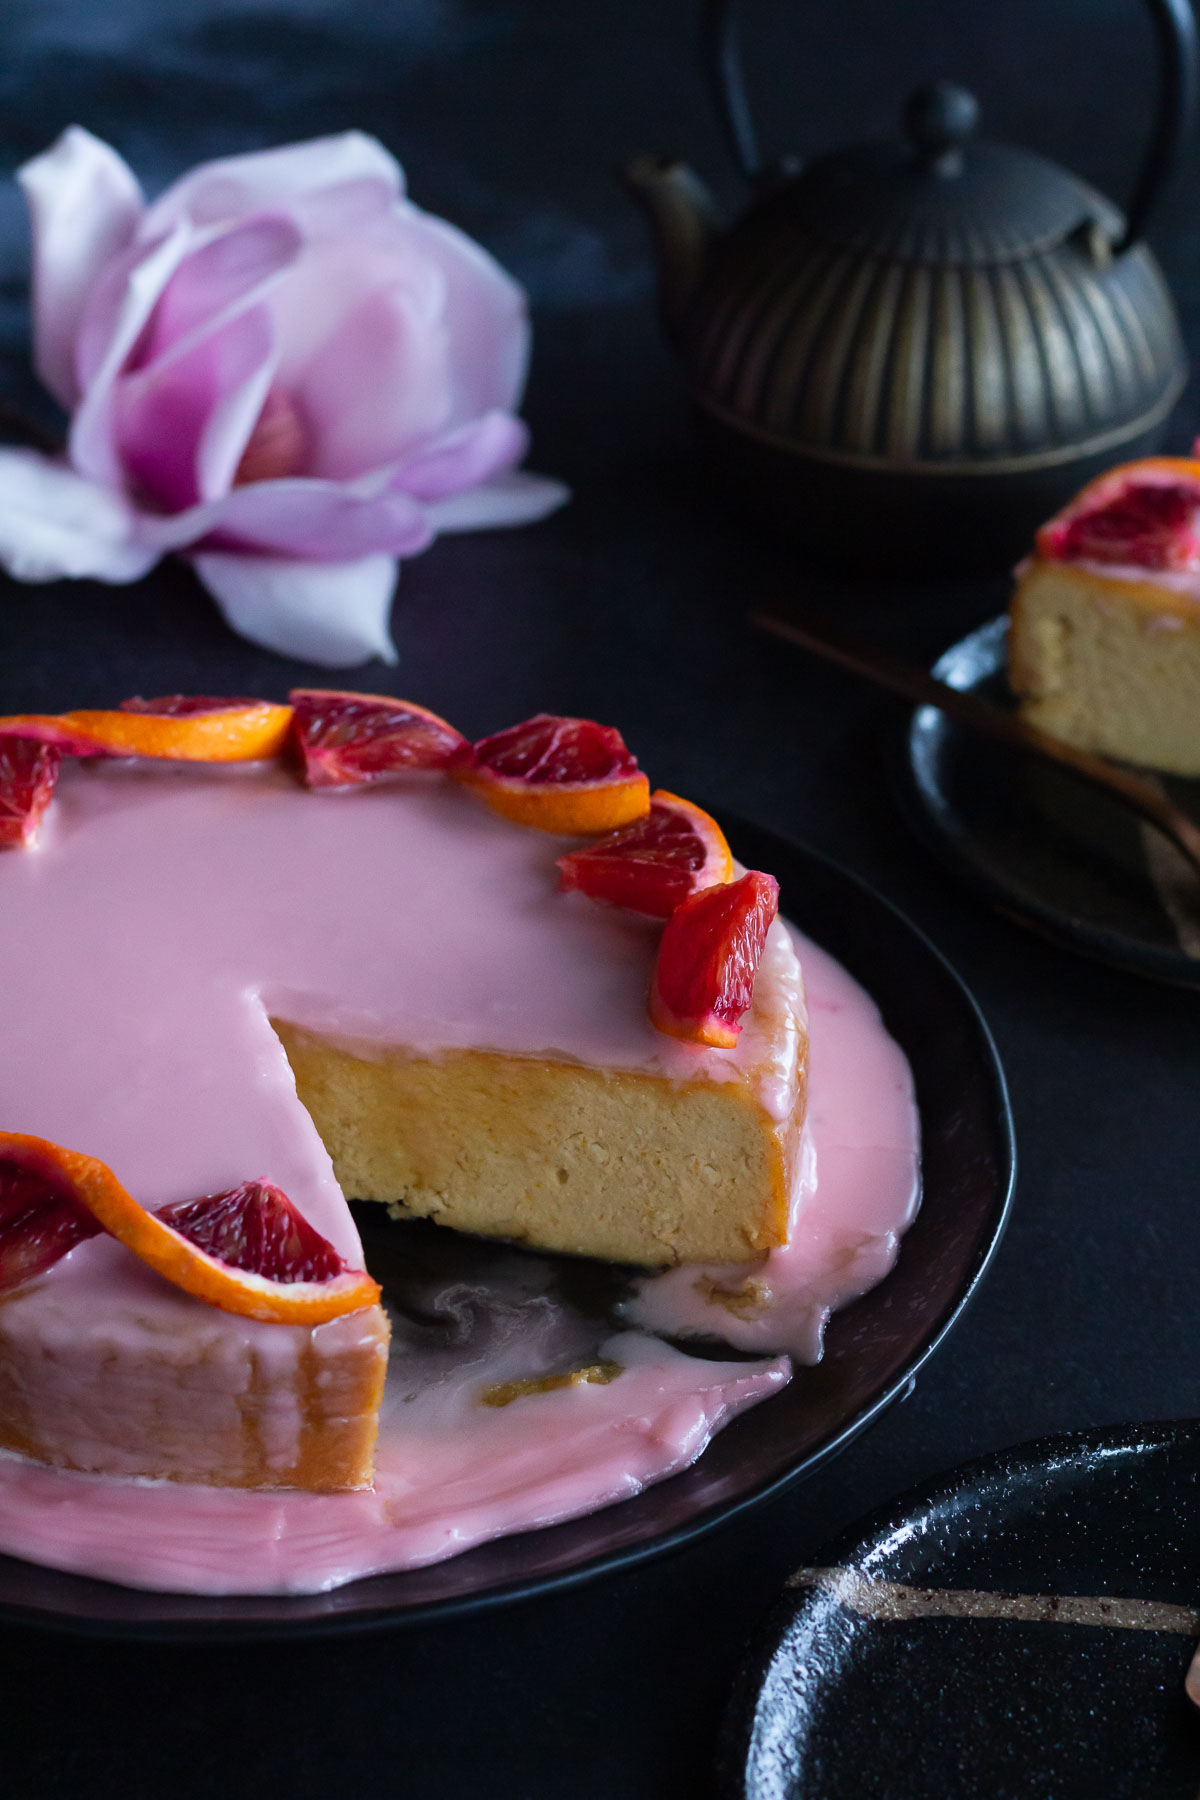 Blood Orange cake, sliced and ready to savour